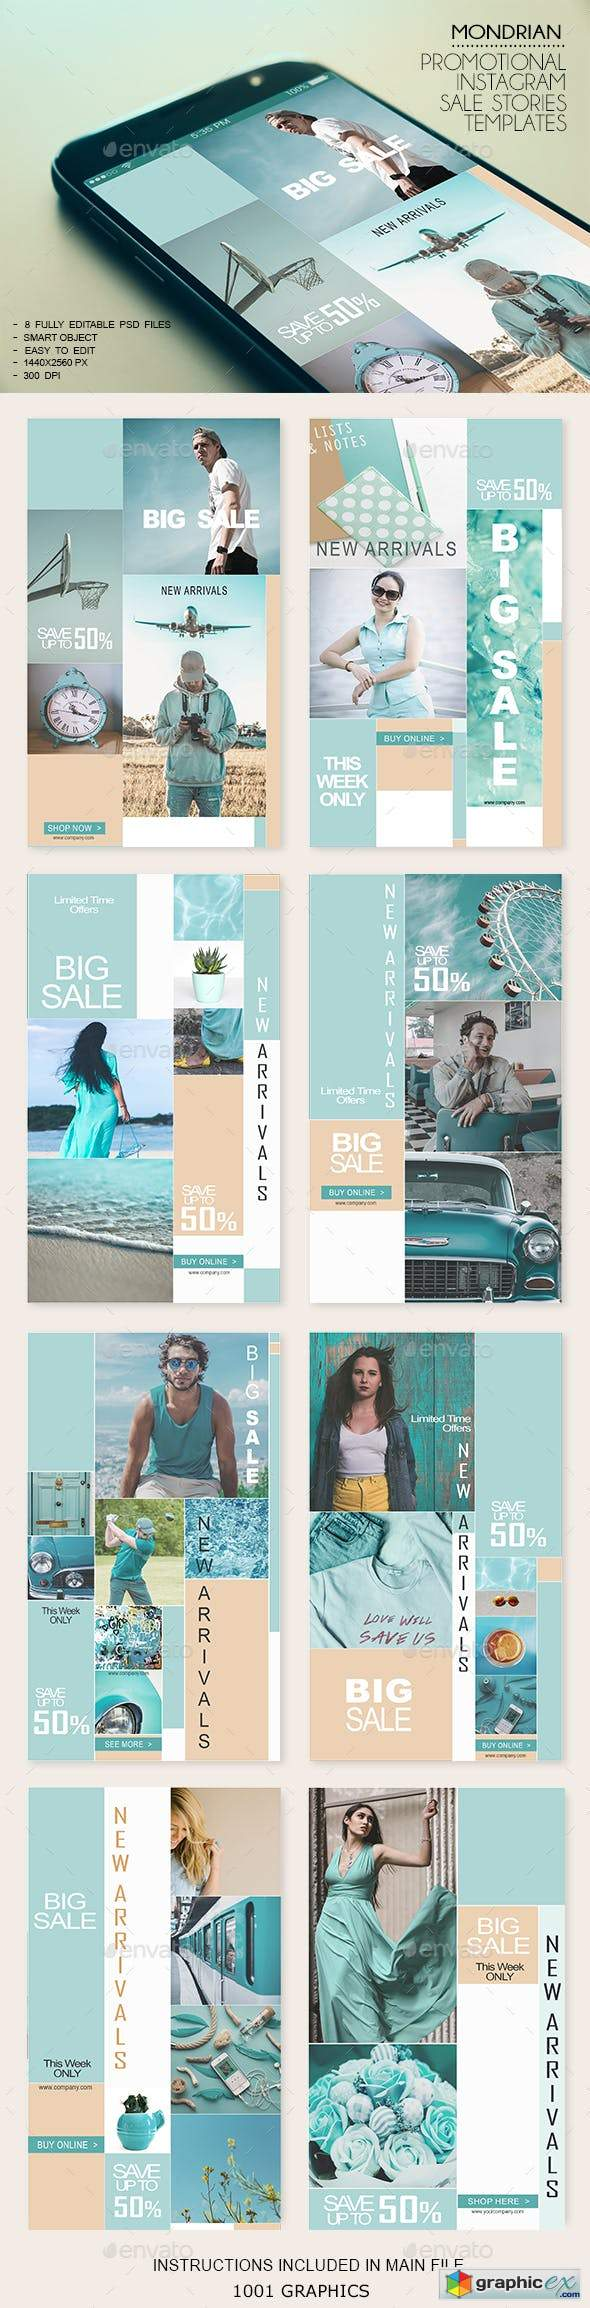 8 Mondrian Insta-Stories Sale PSD Templates